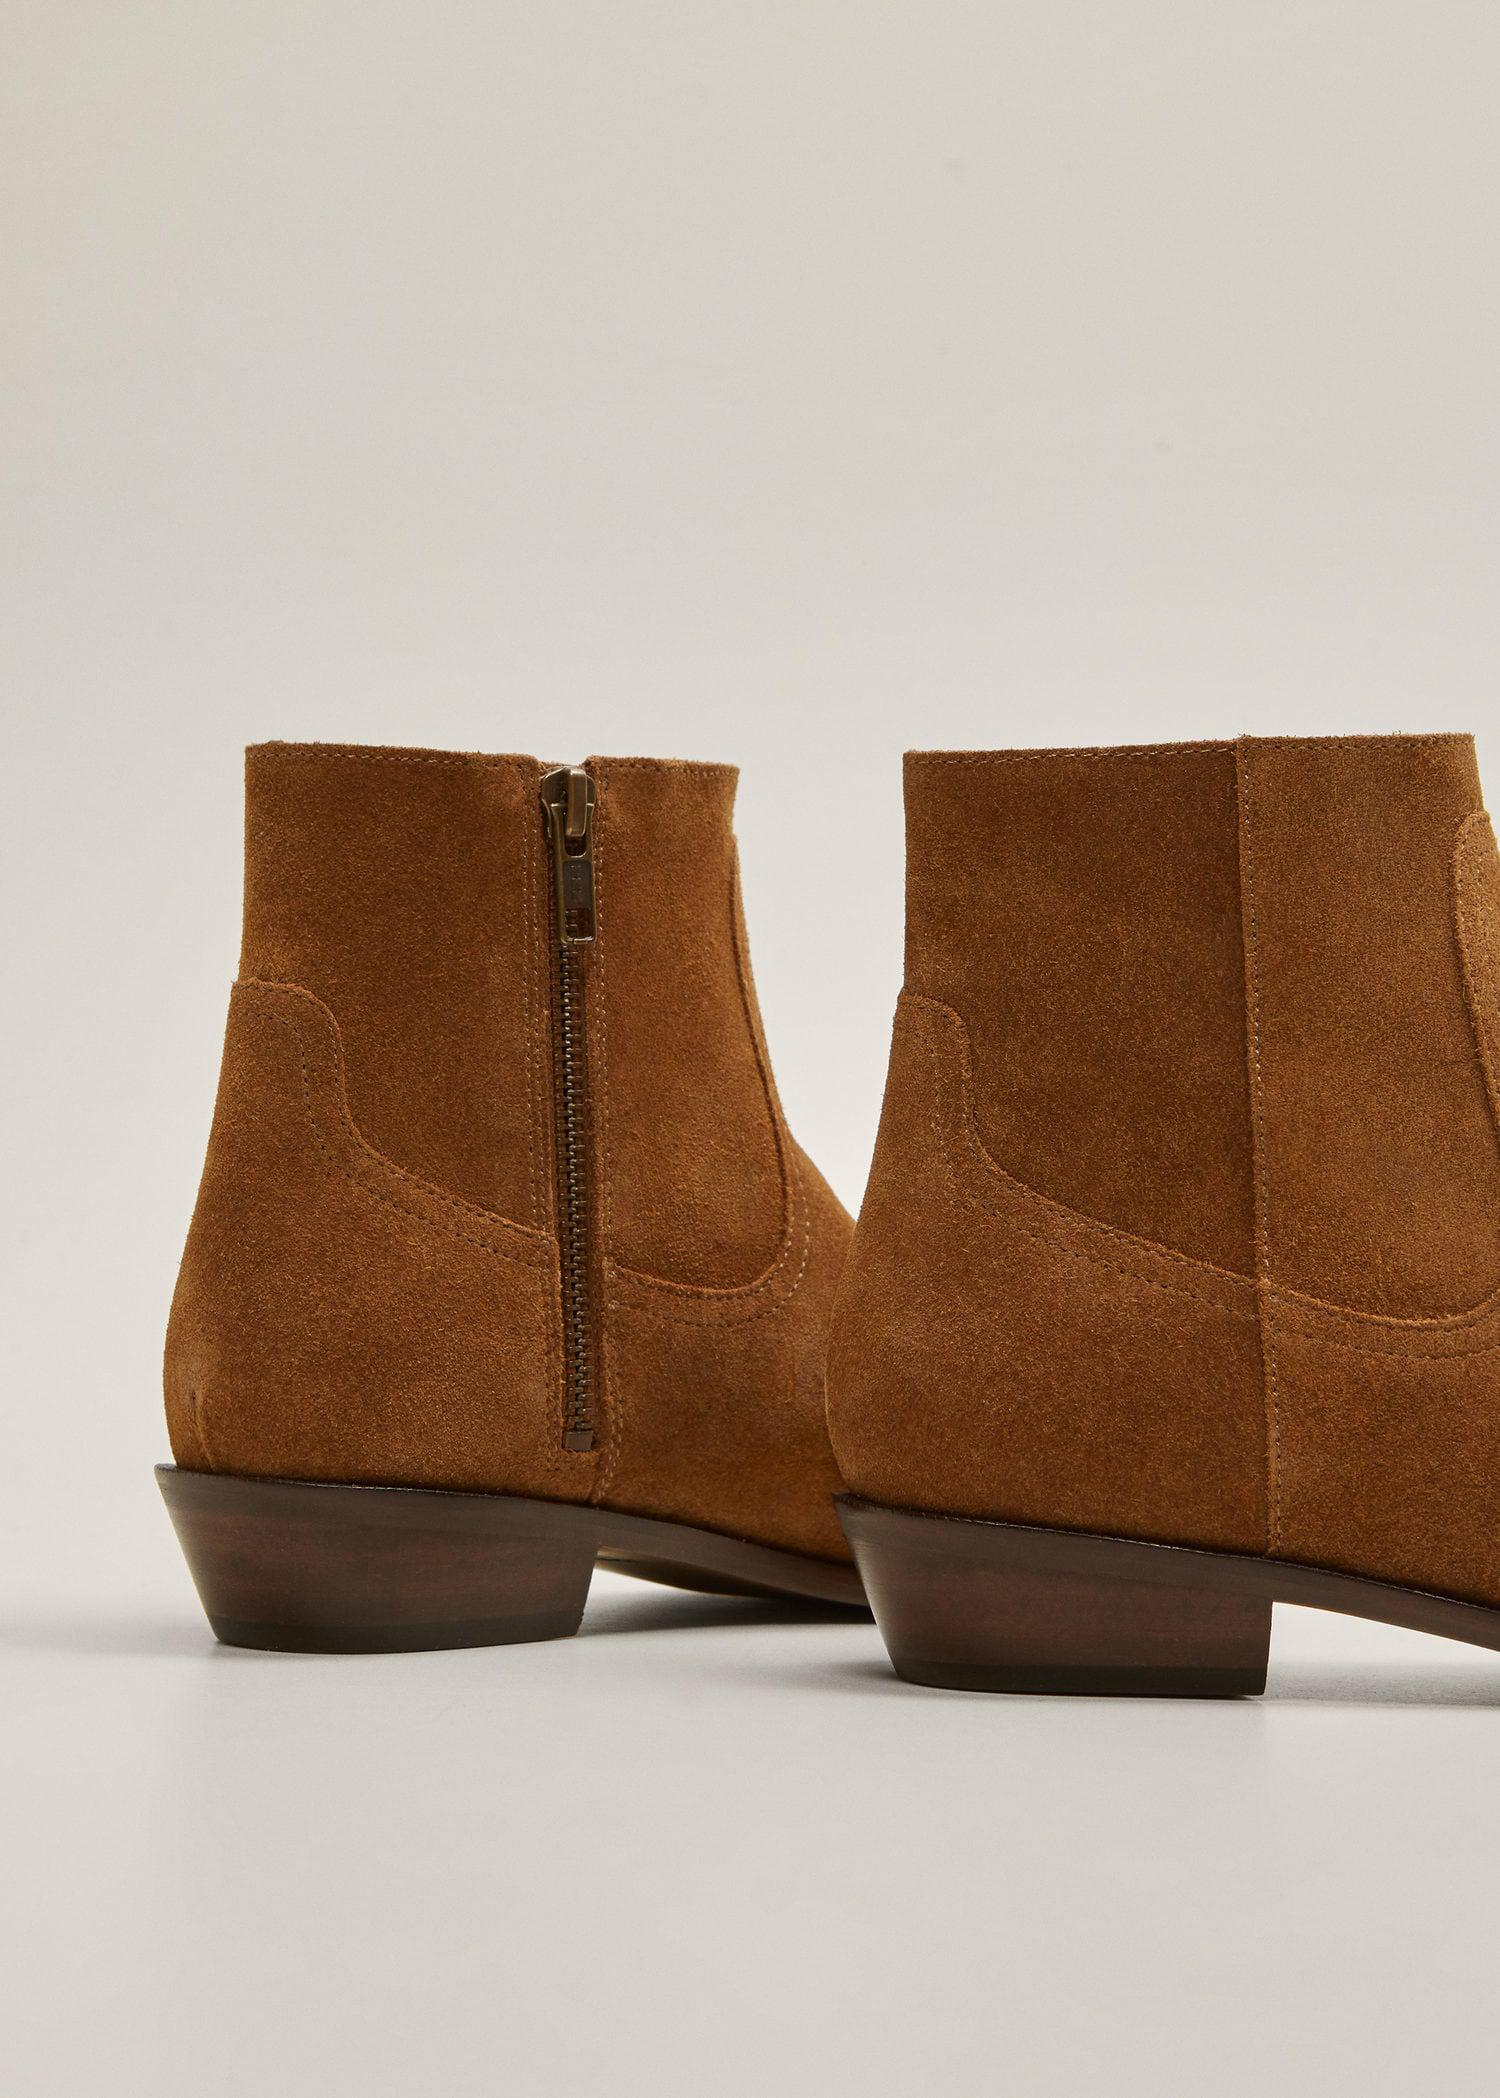 Mango Zipper Leather Boots in Tobacco Brown (Brown)